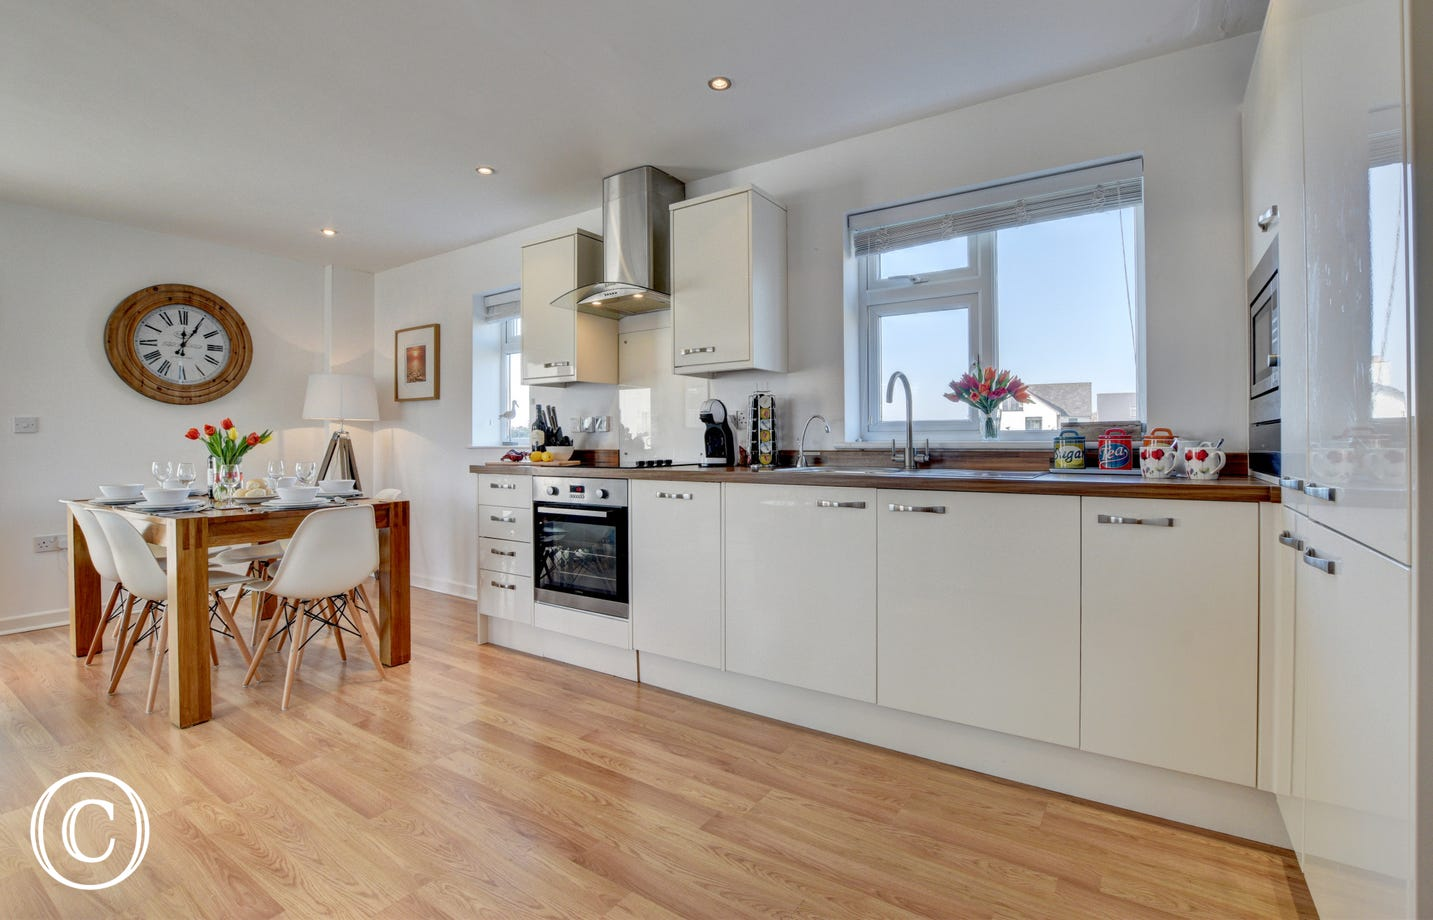 The modern well equipped kitchen and dining area for 6 people make this a great communal area